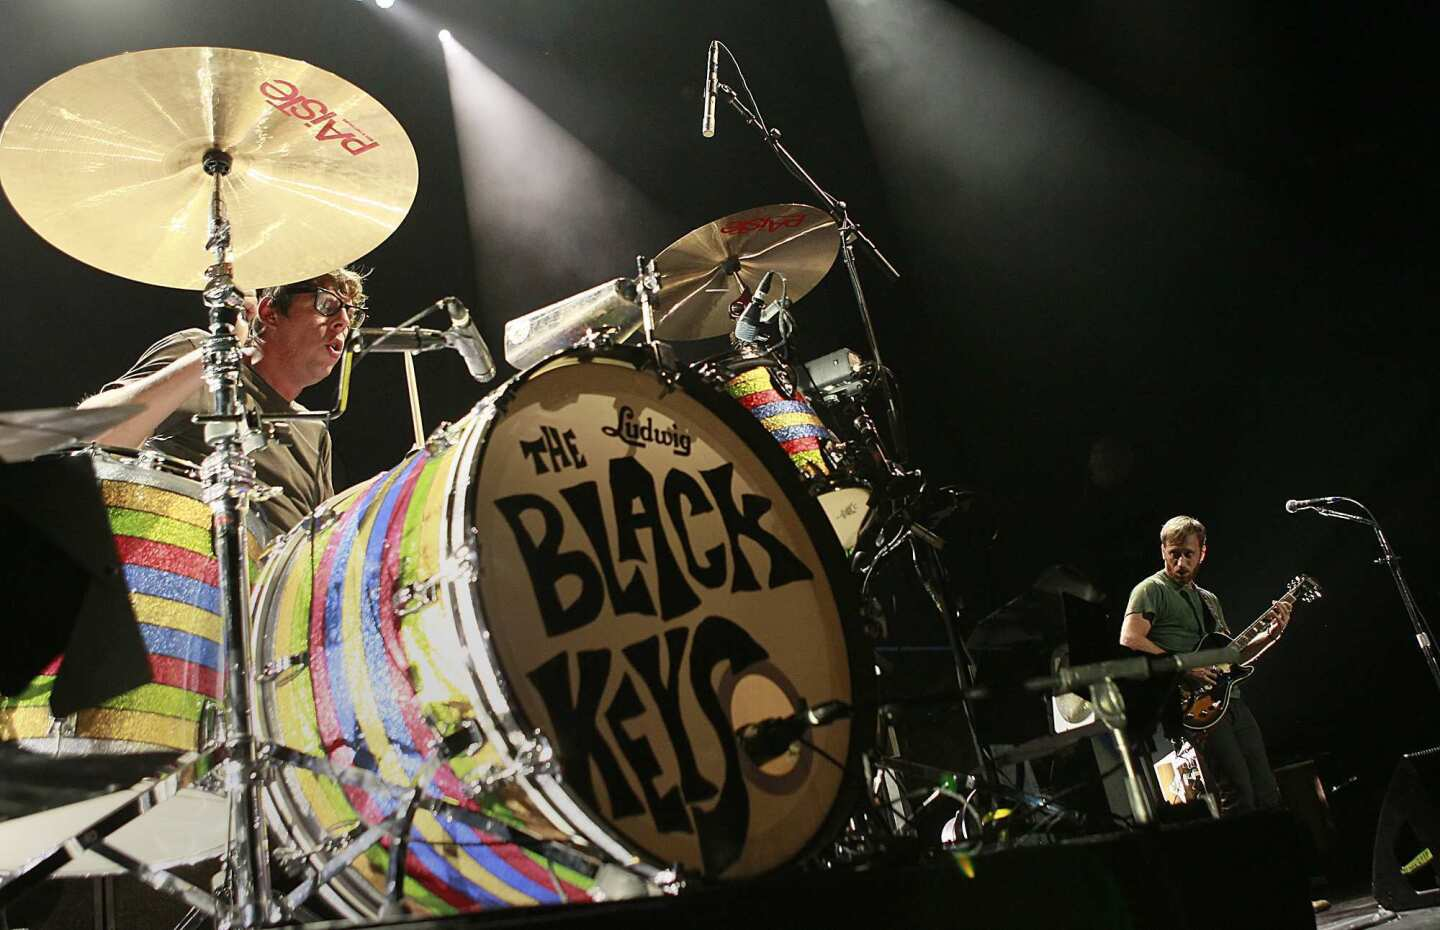 Patrick Carney, left, and Dan Auerbach of the Black Keys perform at Staples Center.